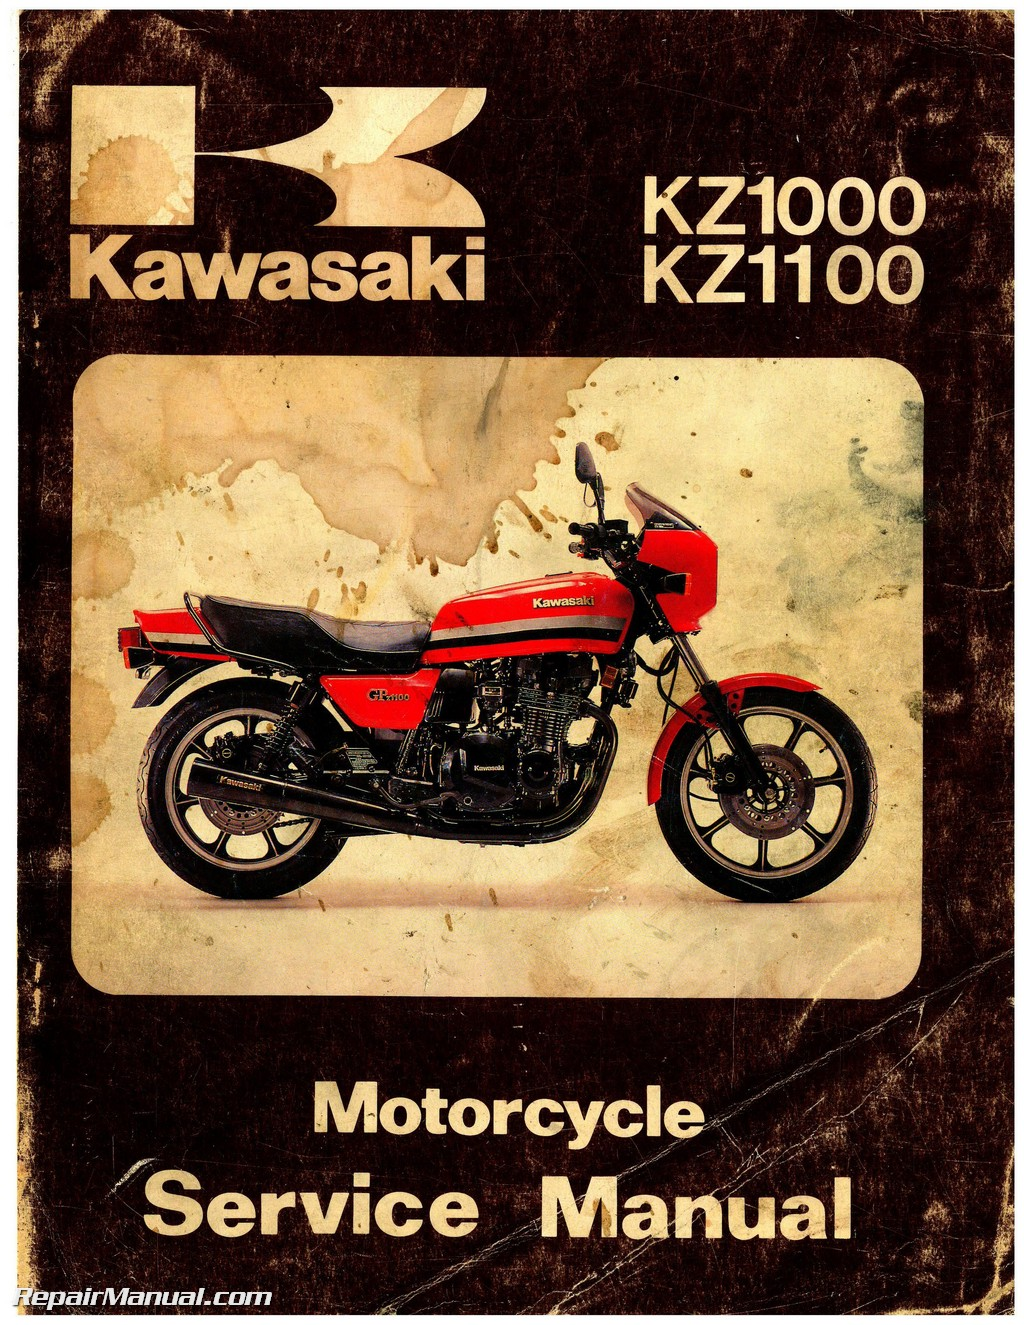 hight resolution of 1981 1982 kawasaki kz1000 kz1100 motorcycle repair service manual wiring an exhaust fan 78 kz1000 b2 wiring schematic